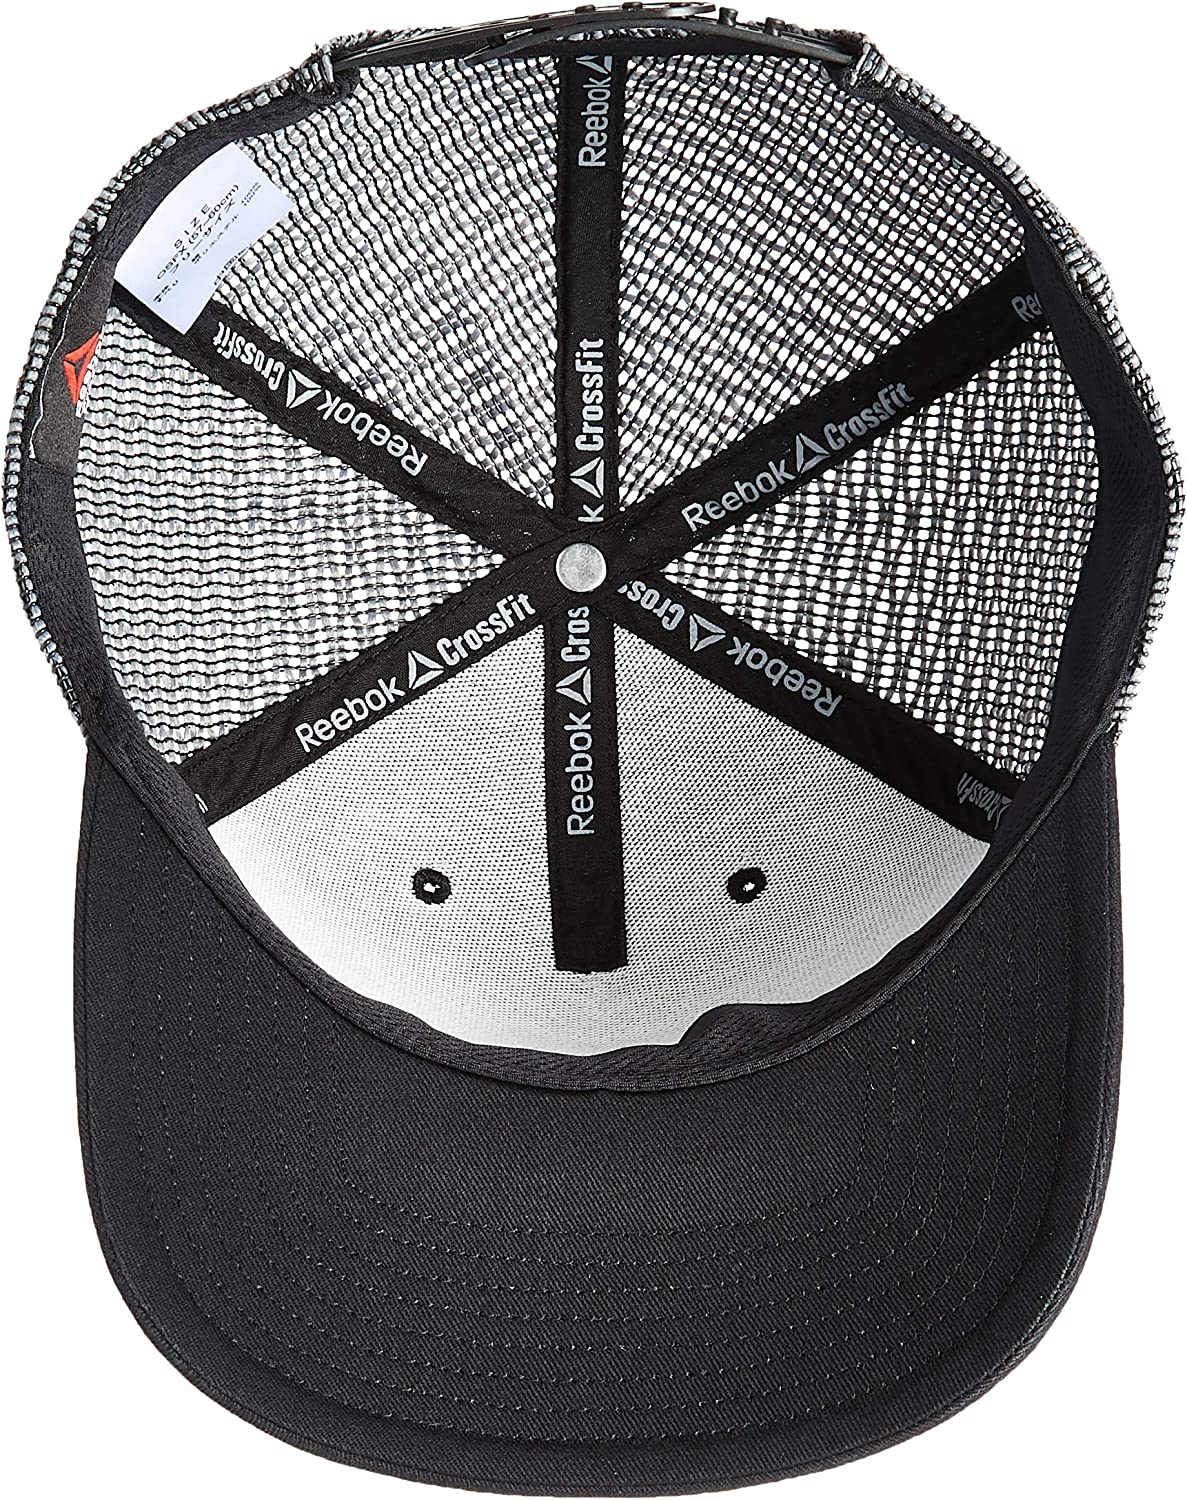 Reebok Crossfit Headwear Cap Gorra Ajustable: Amazon.es: Deportes ...